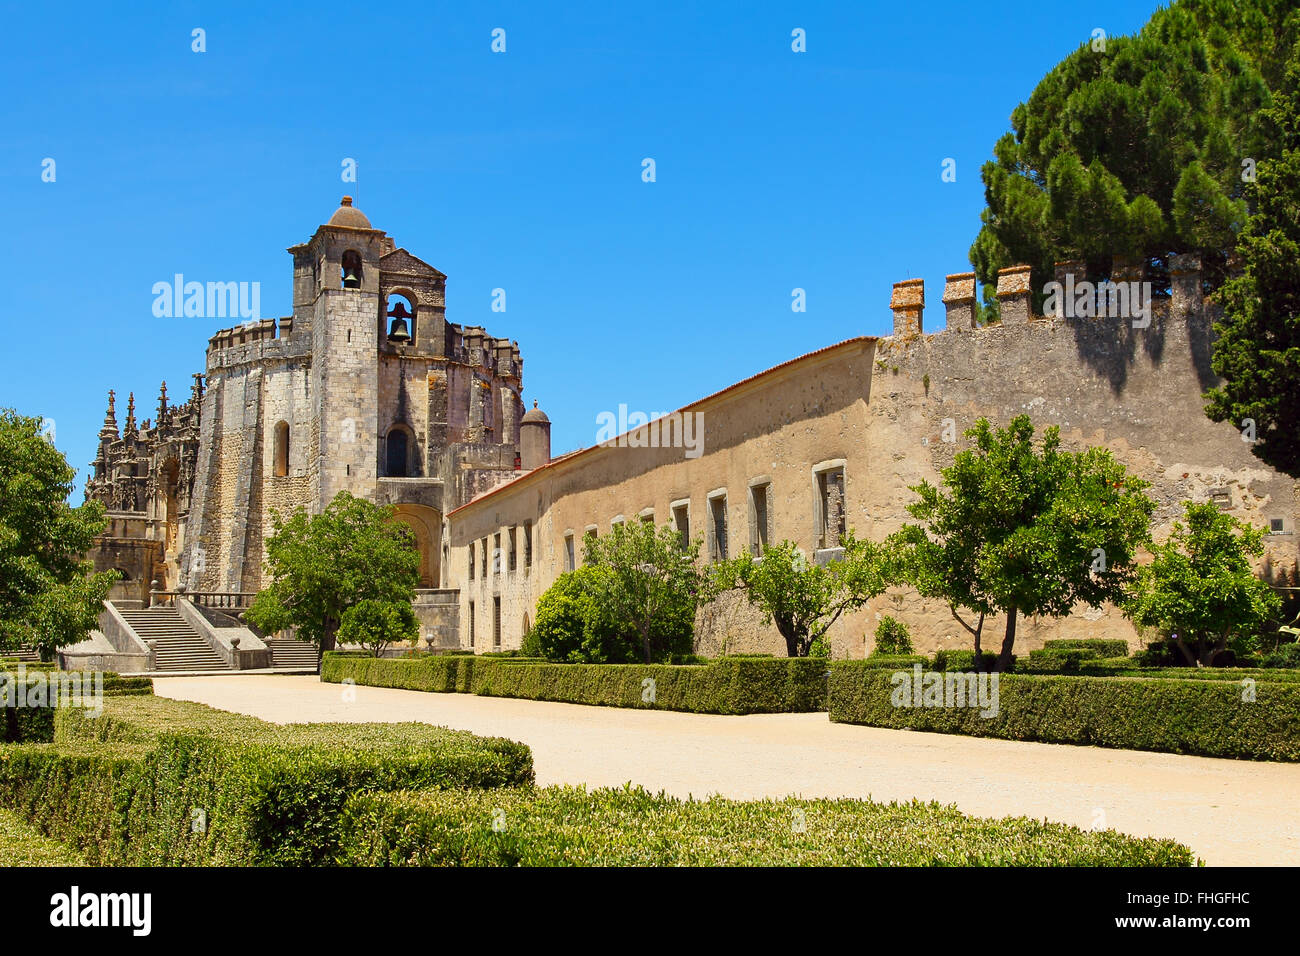 Templar knights castle of Tomar . Portugal - Stock Image